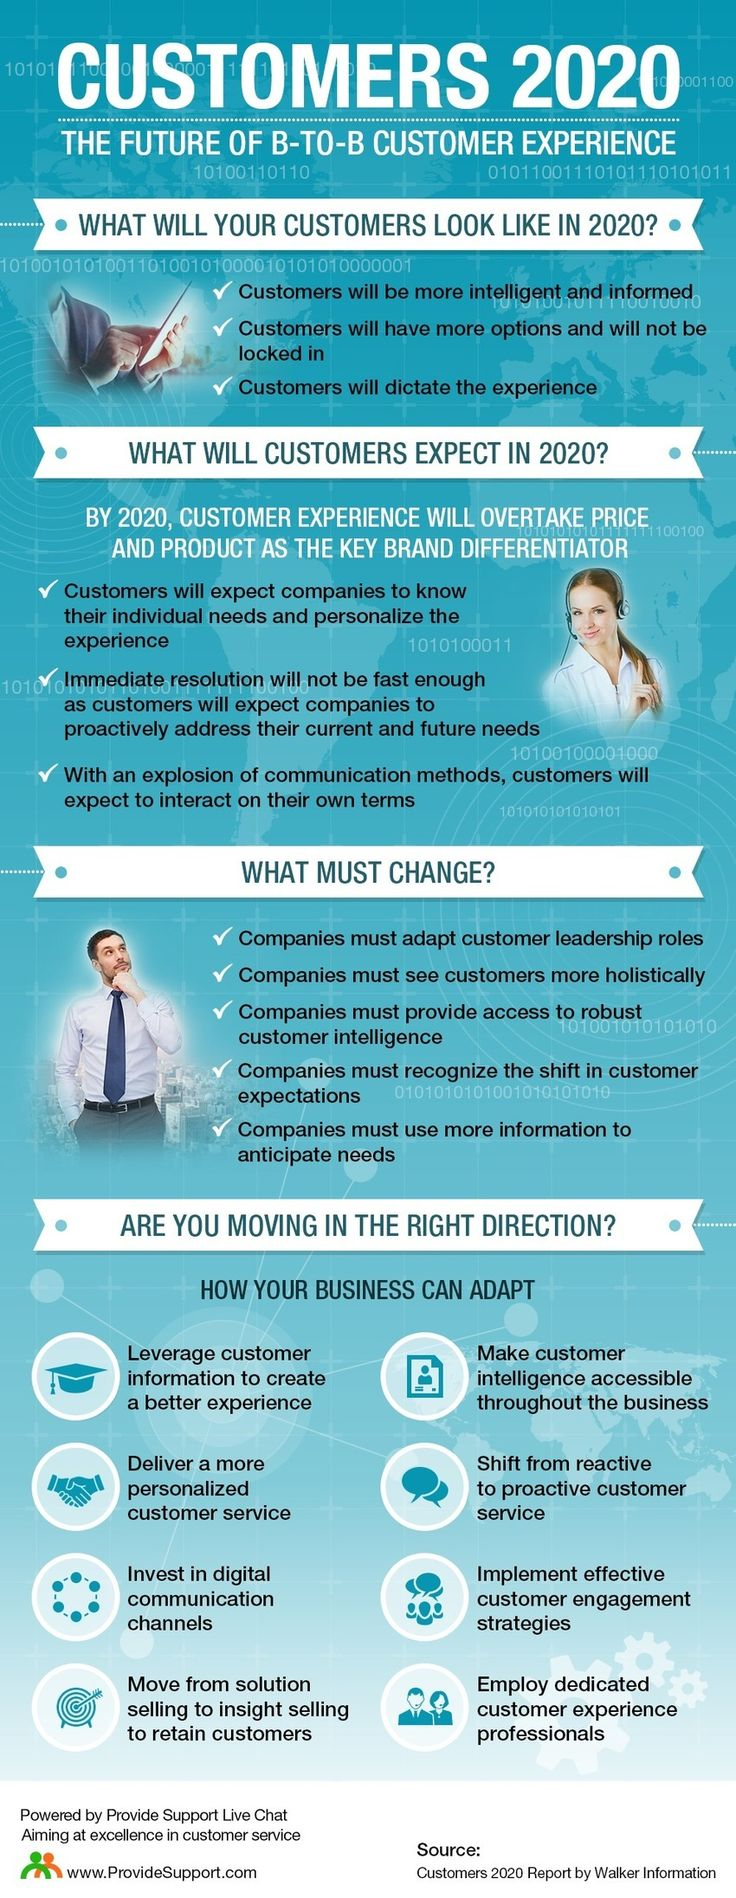 marketing of services kiwi experience About work services news contact who we are fresh energic pioneer marketing innovator.